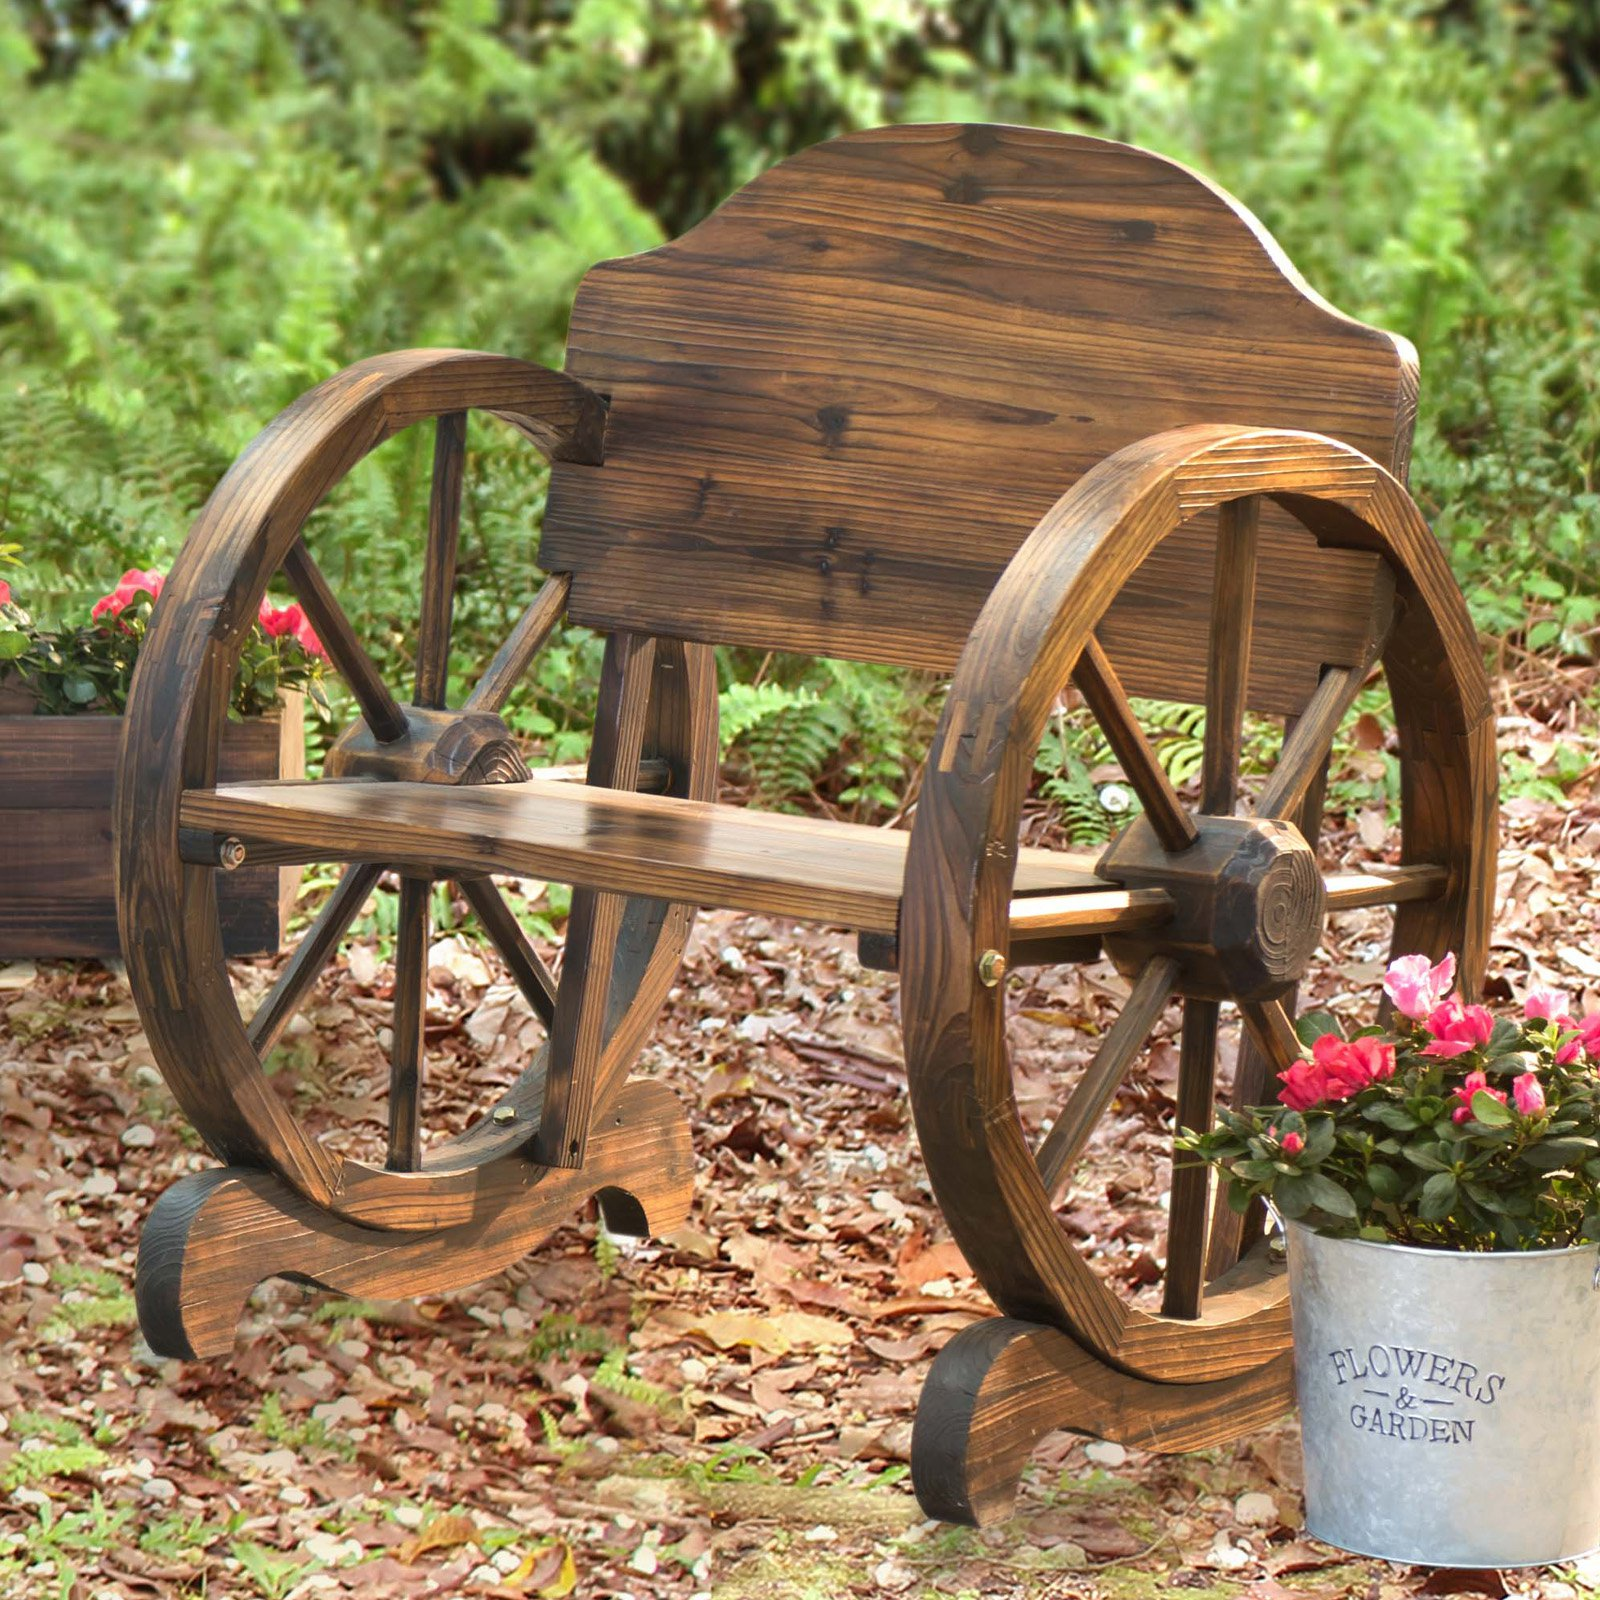 "Sunjoy 110207003 Rustic Wood Chair 23"" x 28"" x 30"" with Wagon Wheel Detail"